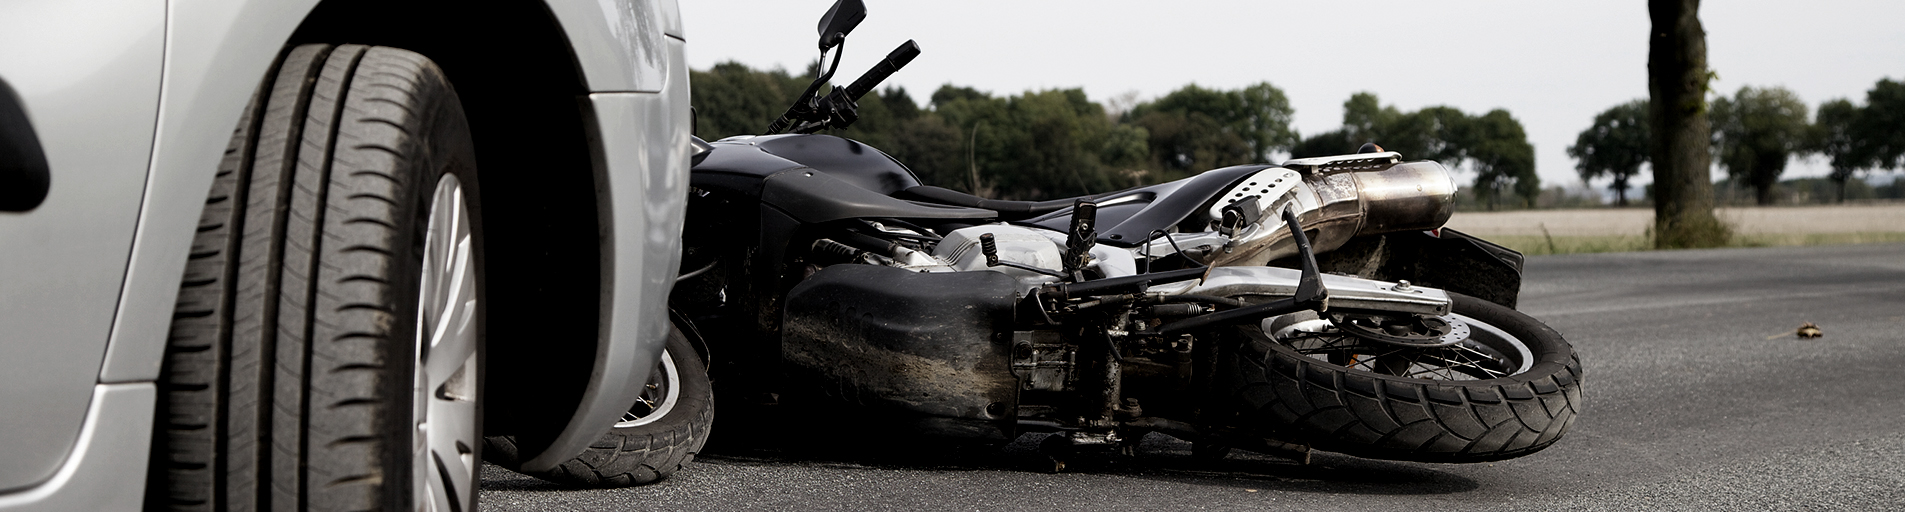 Motorcycle Accident Attorney Boca Raton